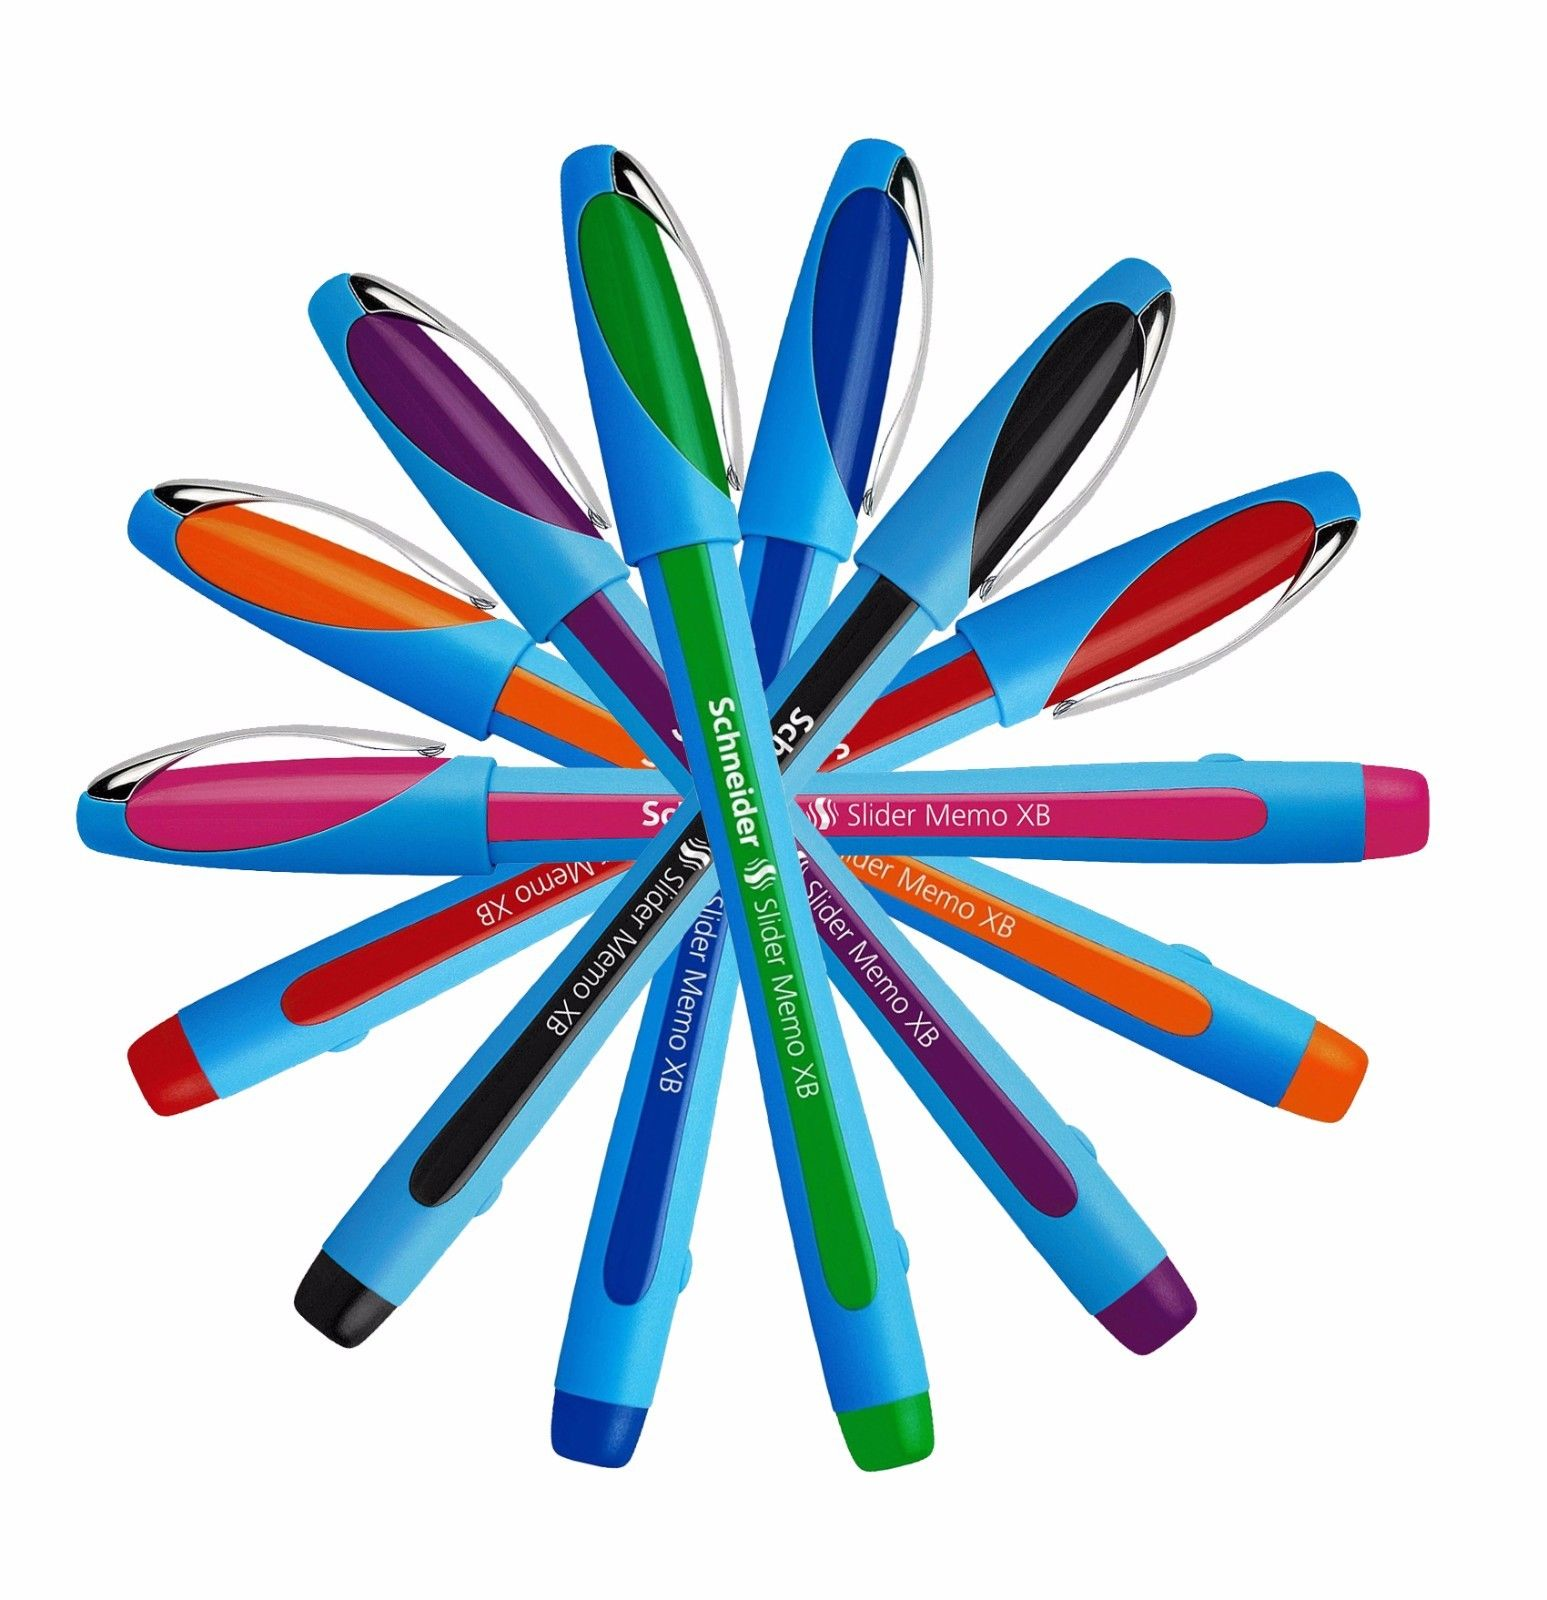 Schneider-Slider-Memo-XB-Ballpoint-Pen-Comfy-Rubber-Grip-Waterproof-All-Colours-152587433080-2